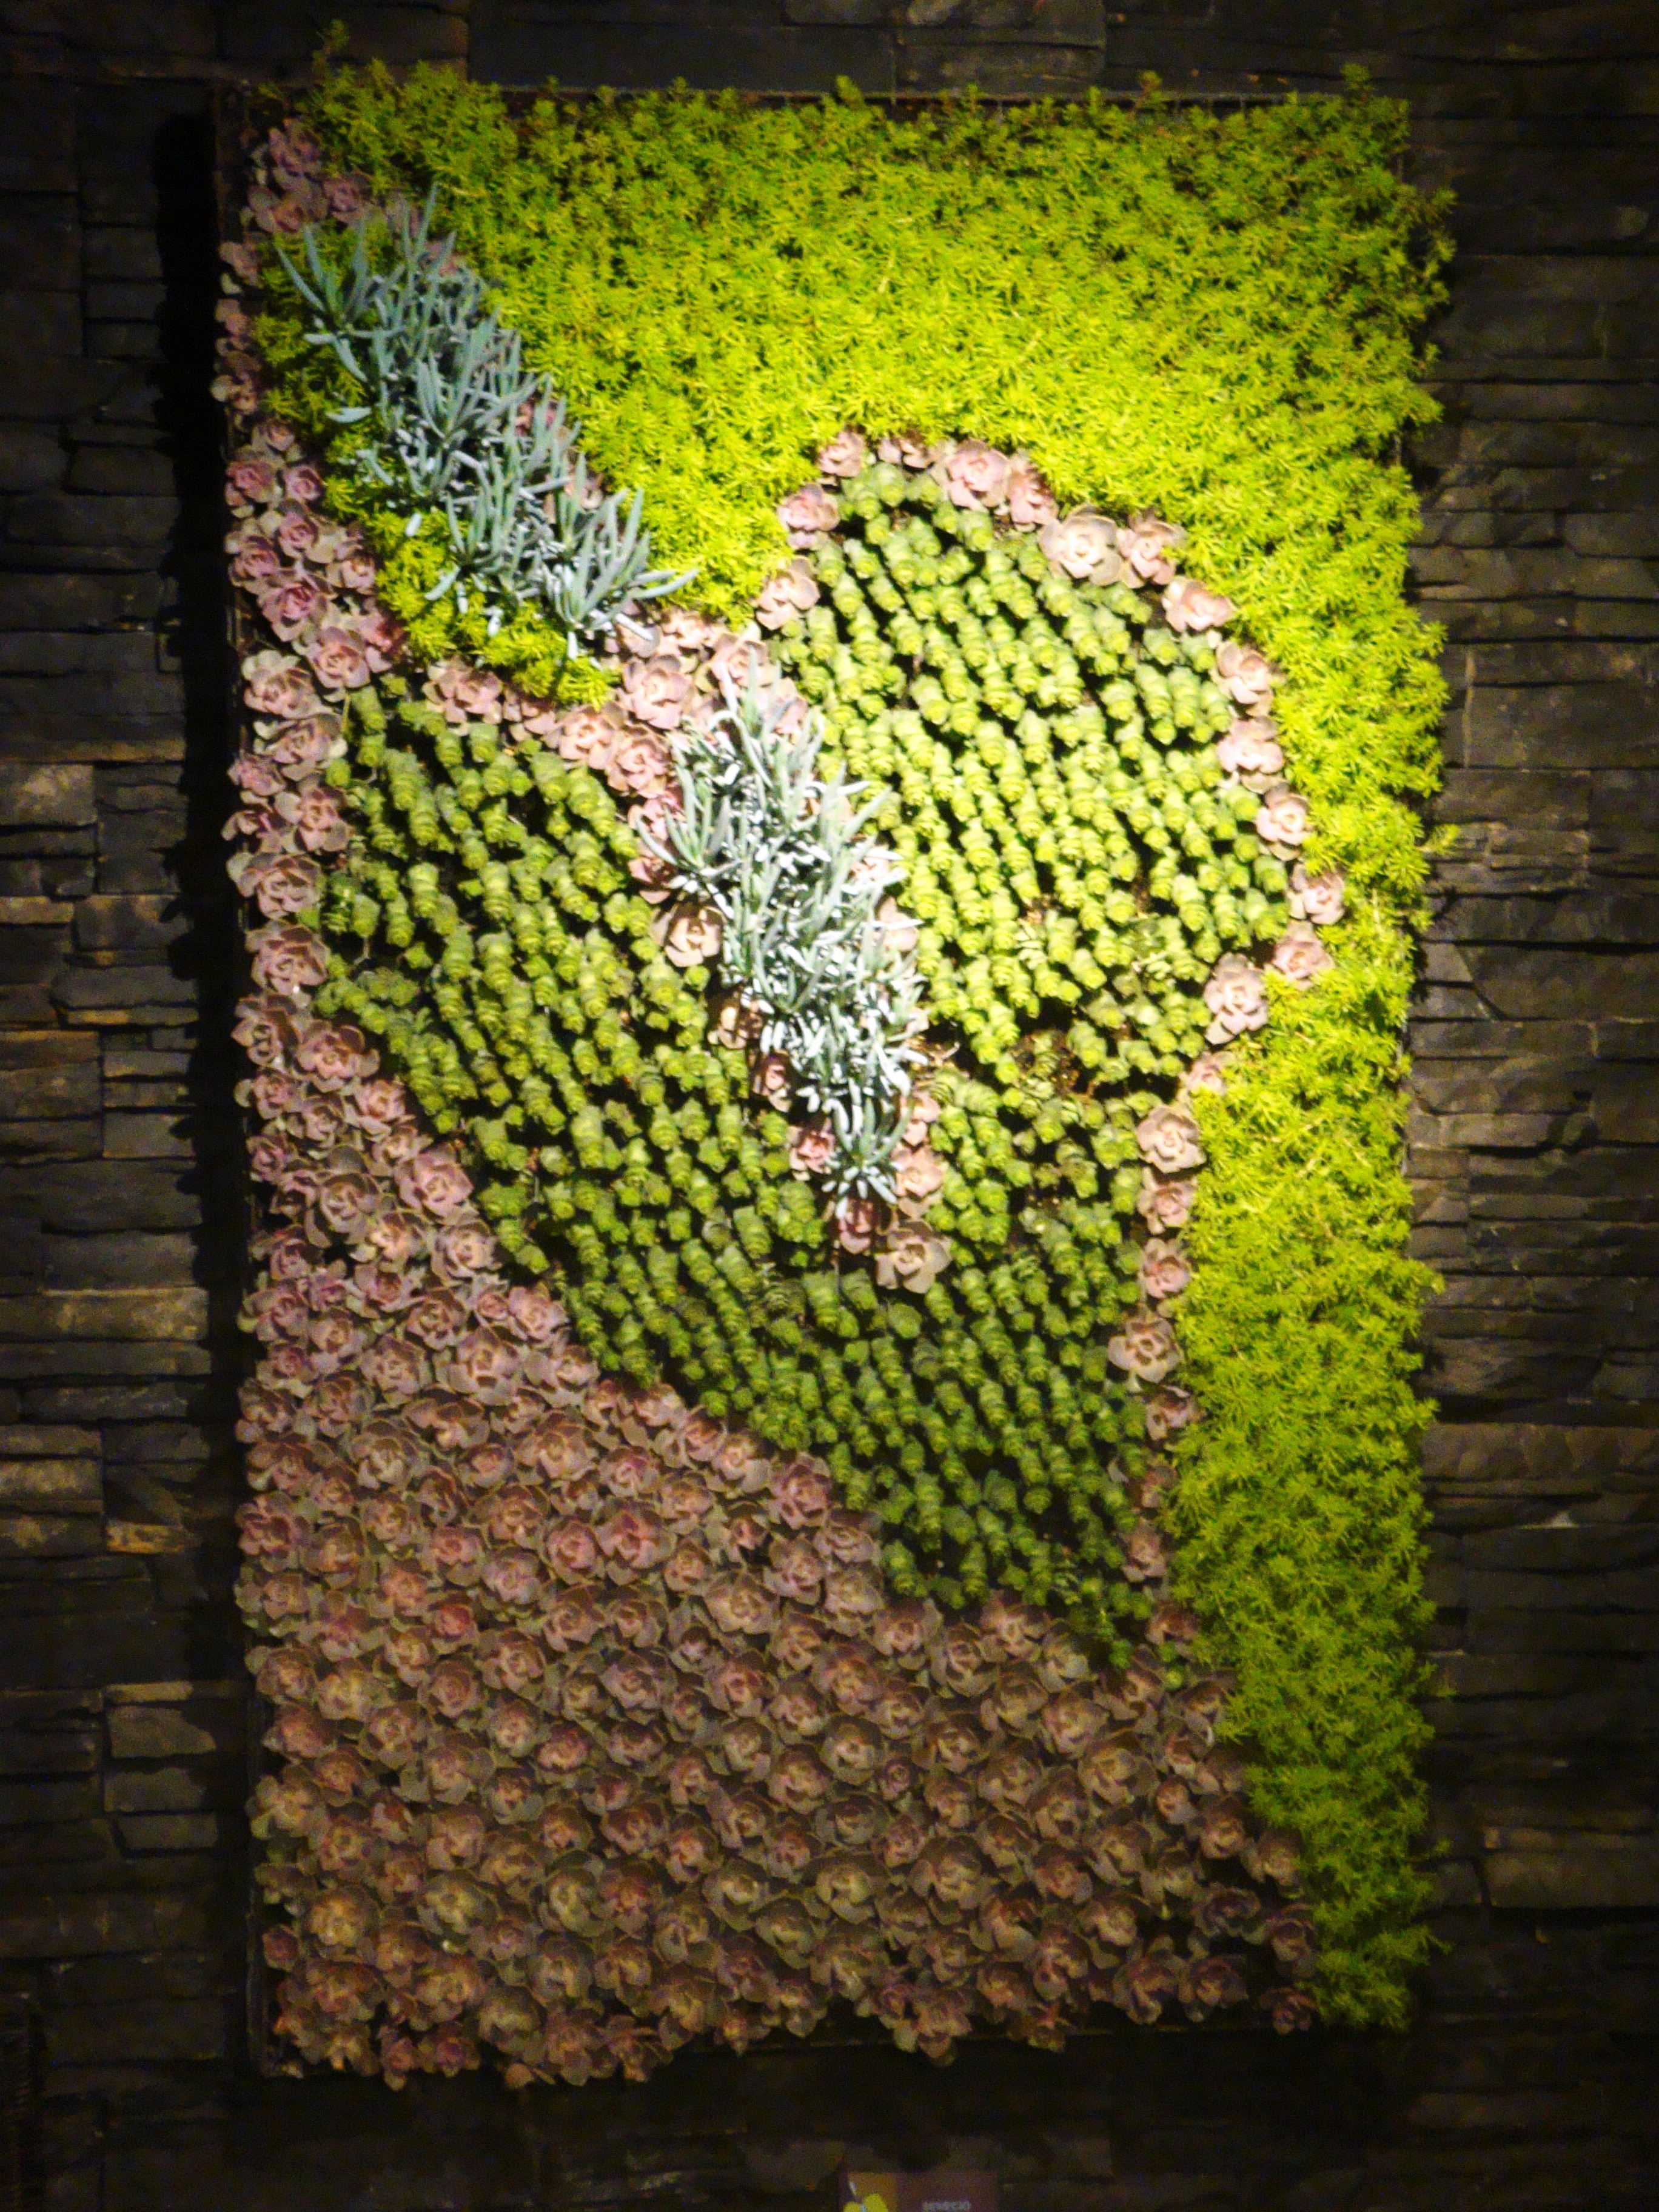 Flower Shows 2012 | Horticulture - The Art  Science of Smart